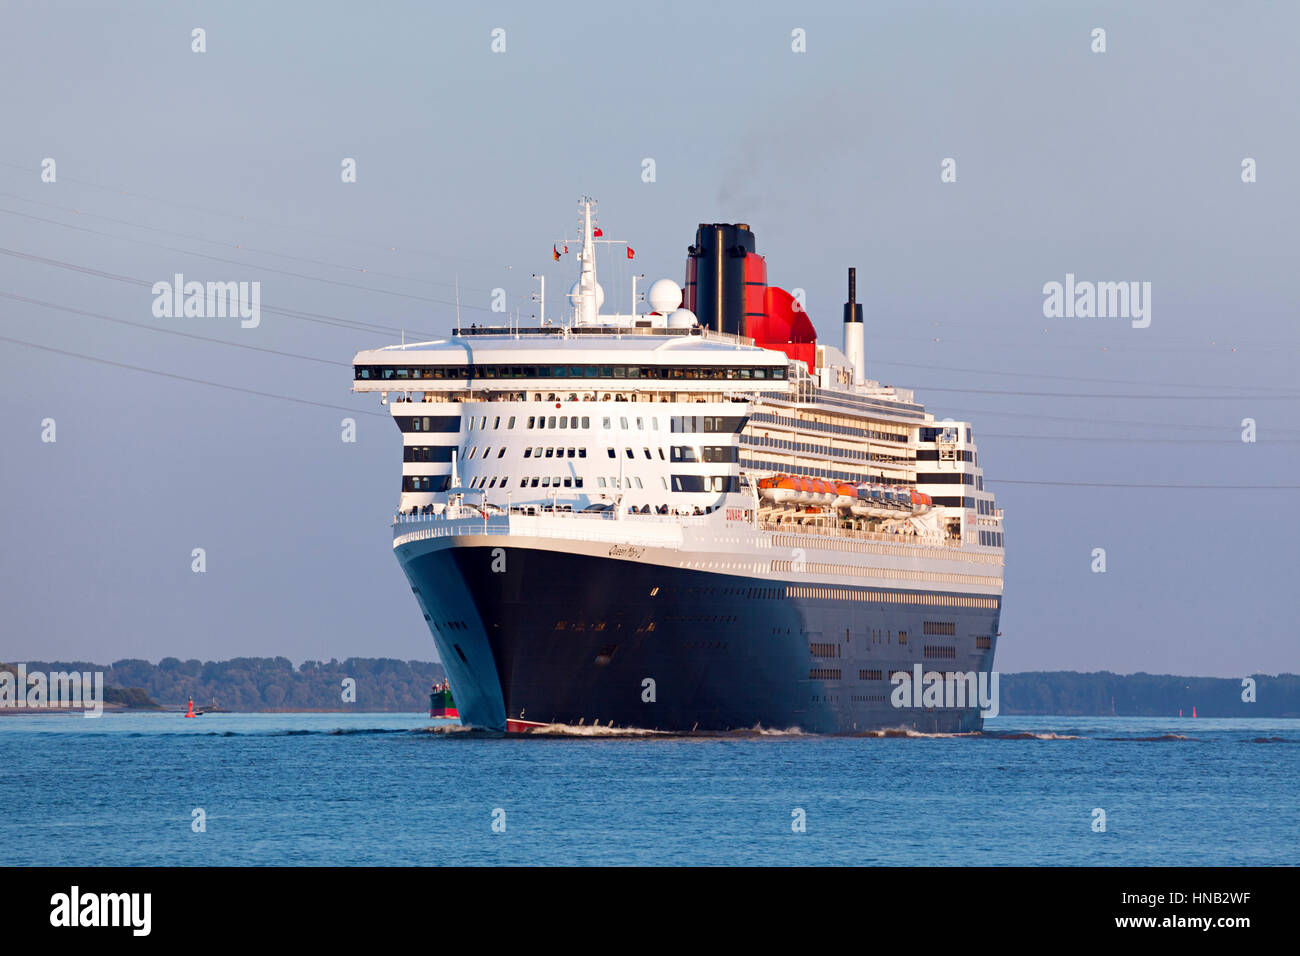 Stade, Germany - August 30, 2016: Luxury cruise ship RMS Queen Mary 2 on Elbe river heading to Southampton. - Stock Image